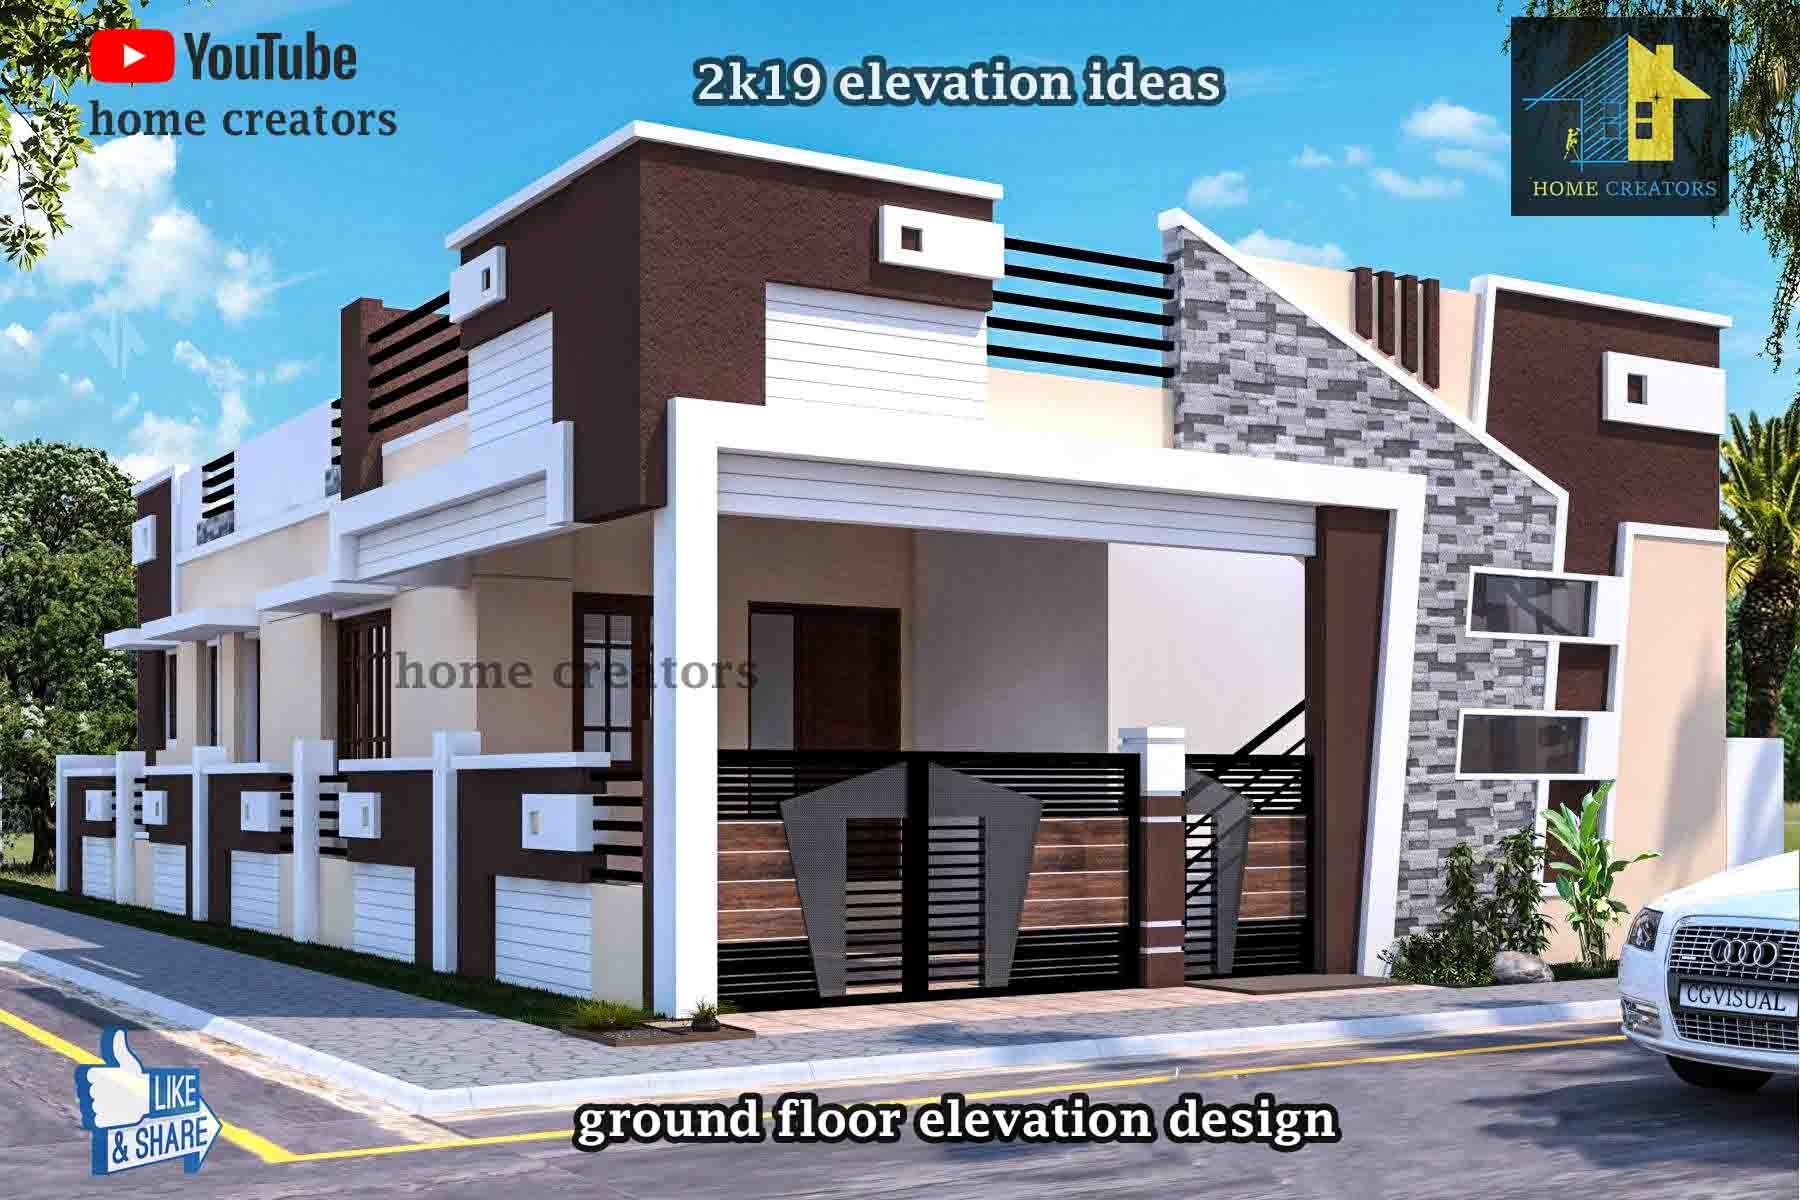 beautiful small house front elevation design ground floor ideas also ryan shed plans and designs for easy building rh pinterest